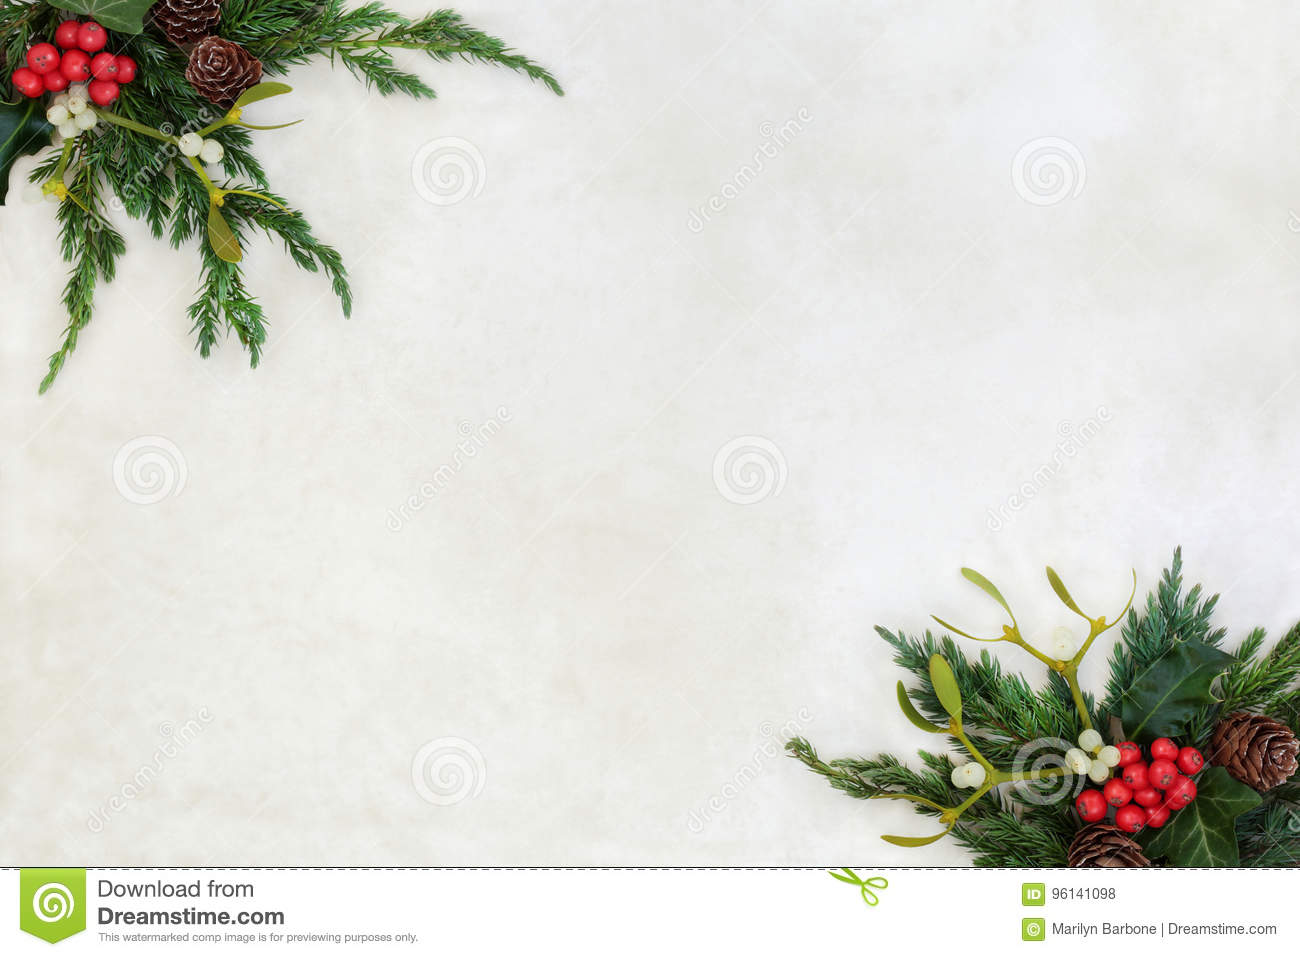 Winter Greenery Border With Fir Mistletoe And Holly Stock